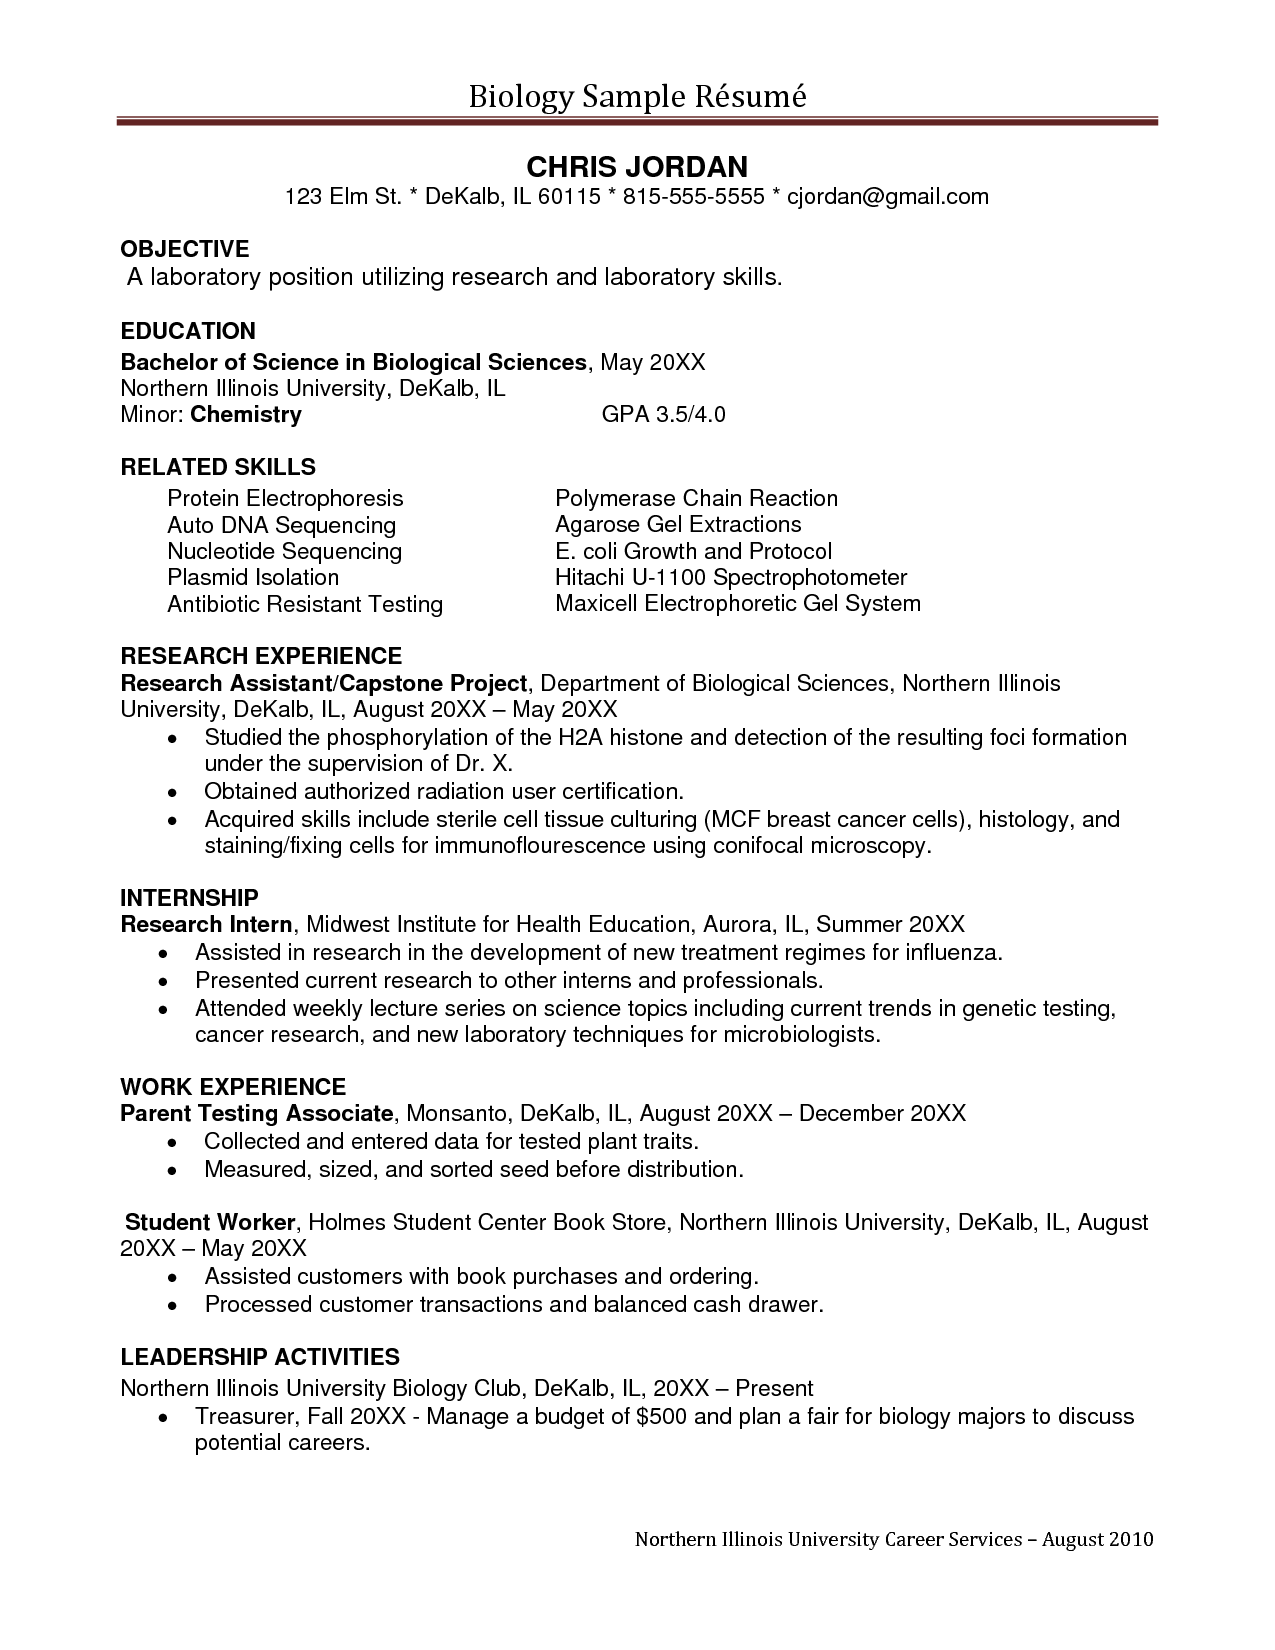 Best Objective For Resume Enchanting Sample Undergraduate Research Assistant Resume Sampleĺ